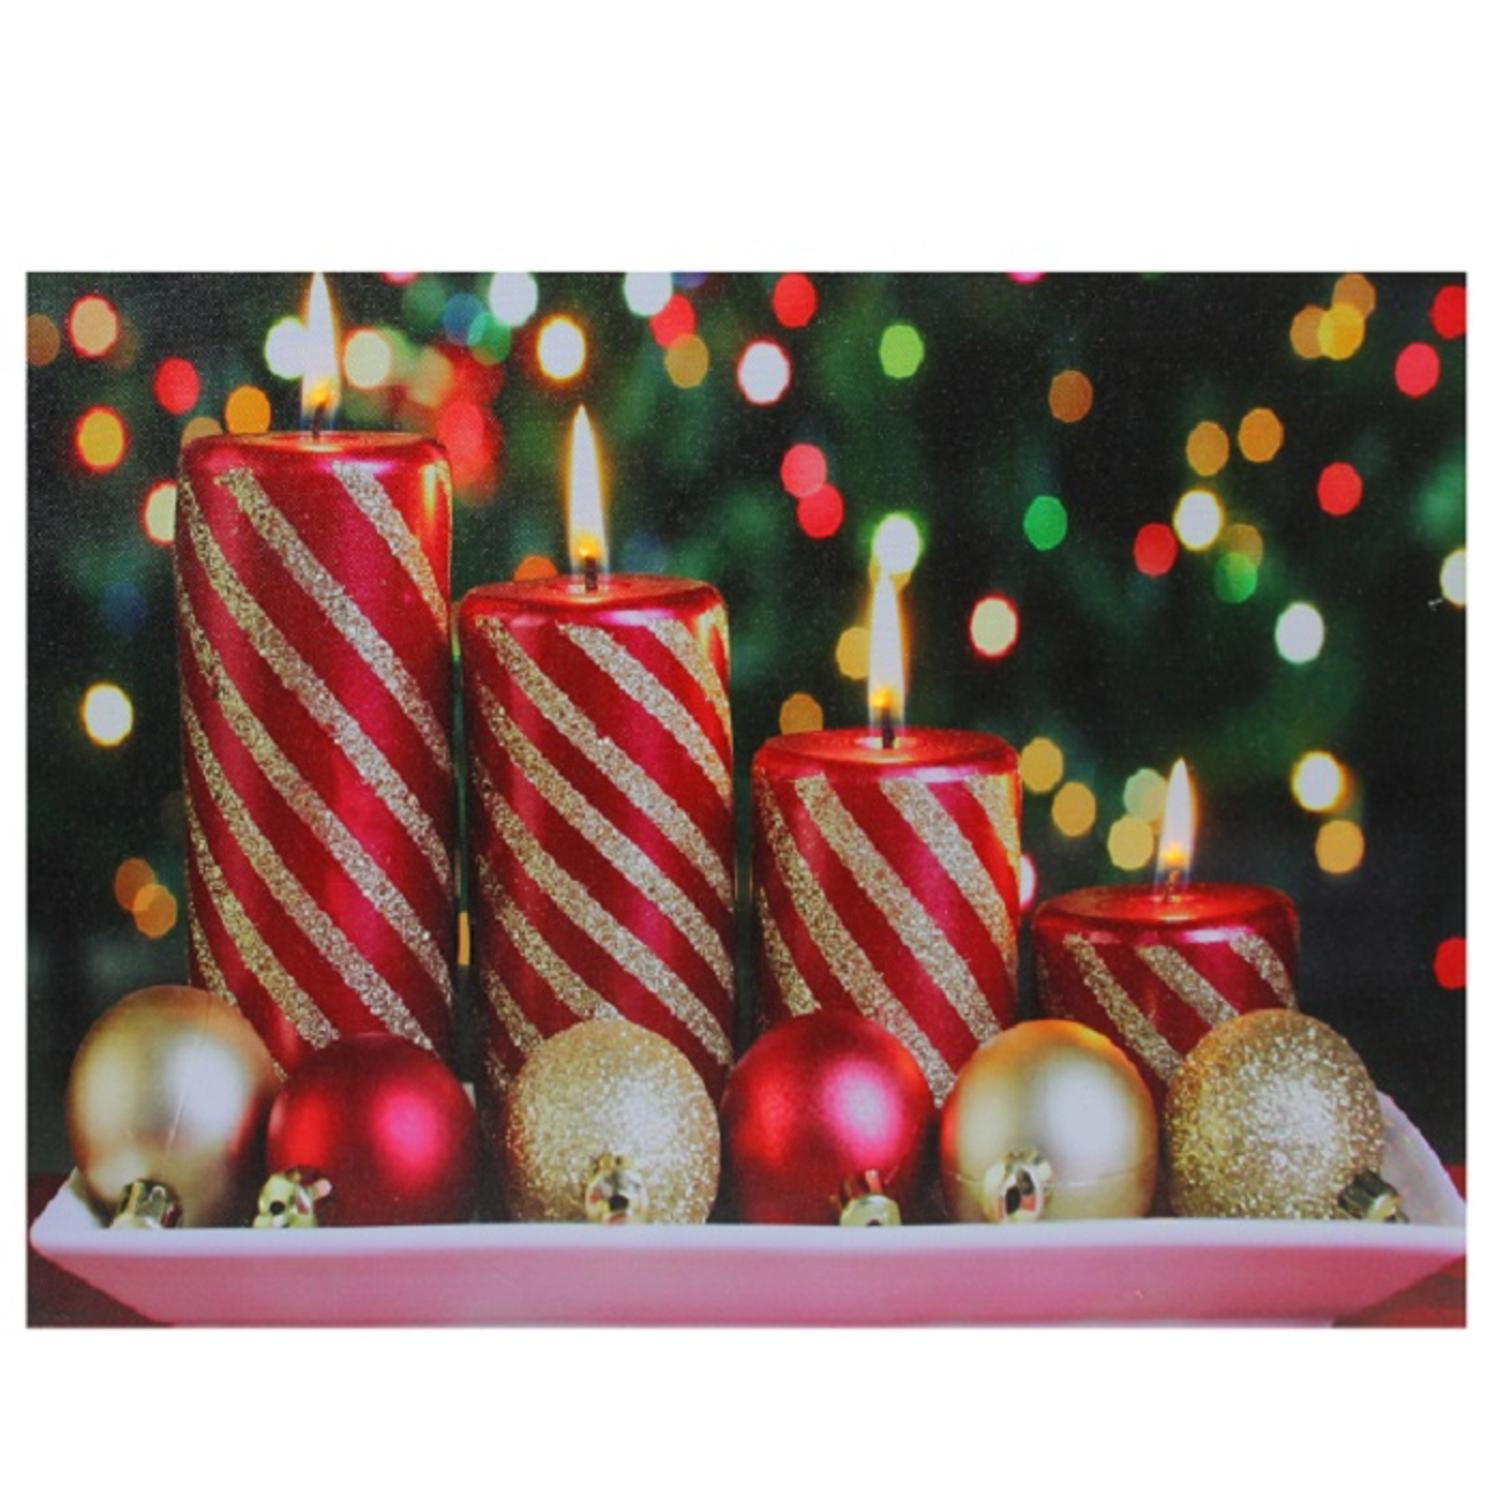 Led lighted christmas candles with ornaments canvas wall for Christmas wall art amazon